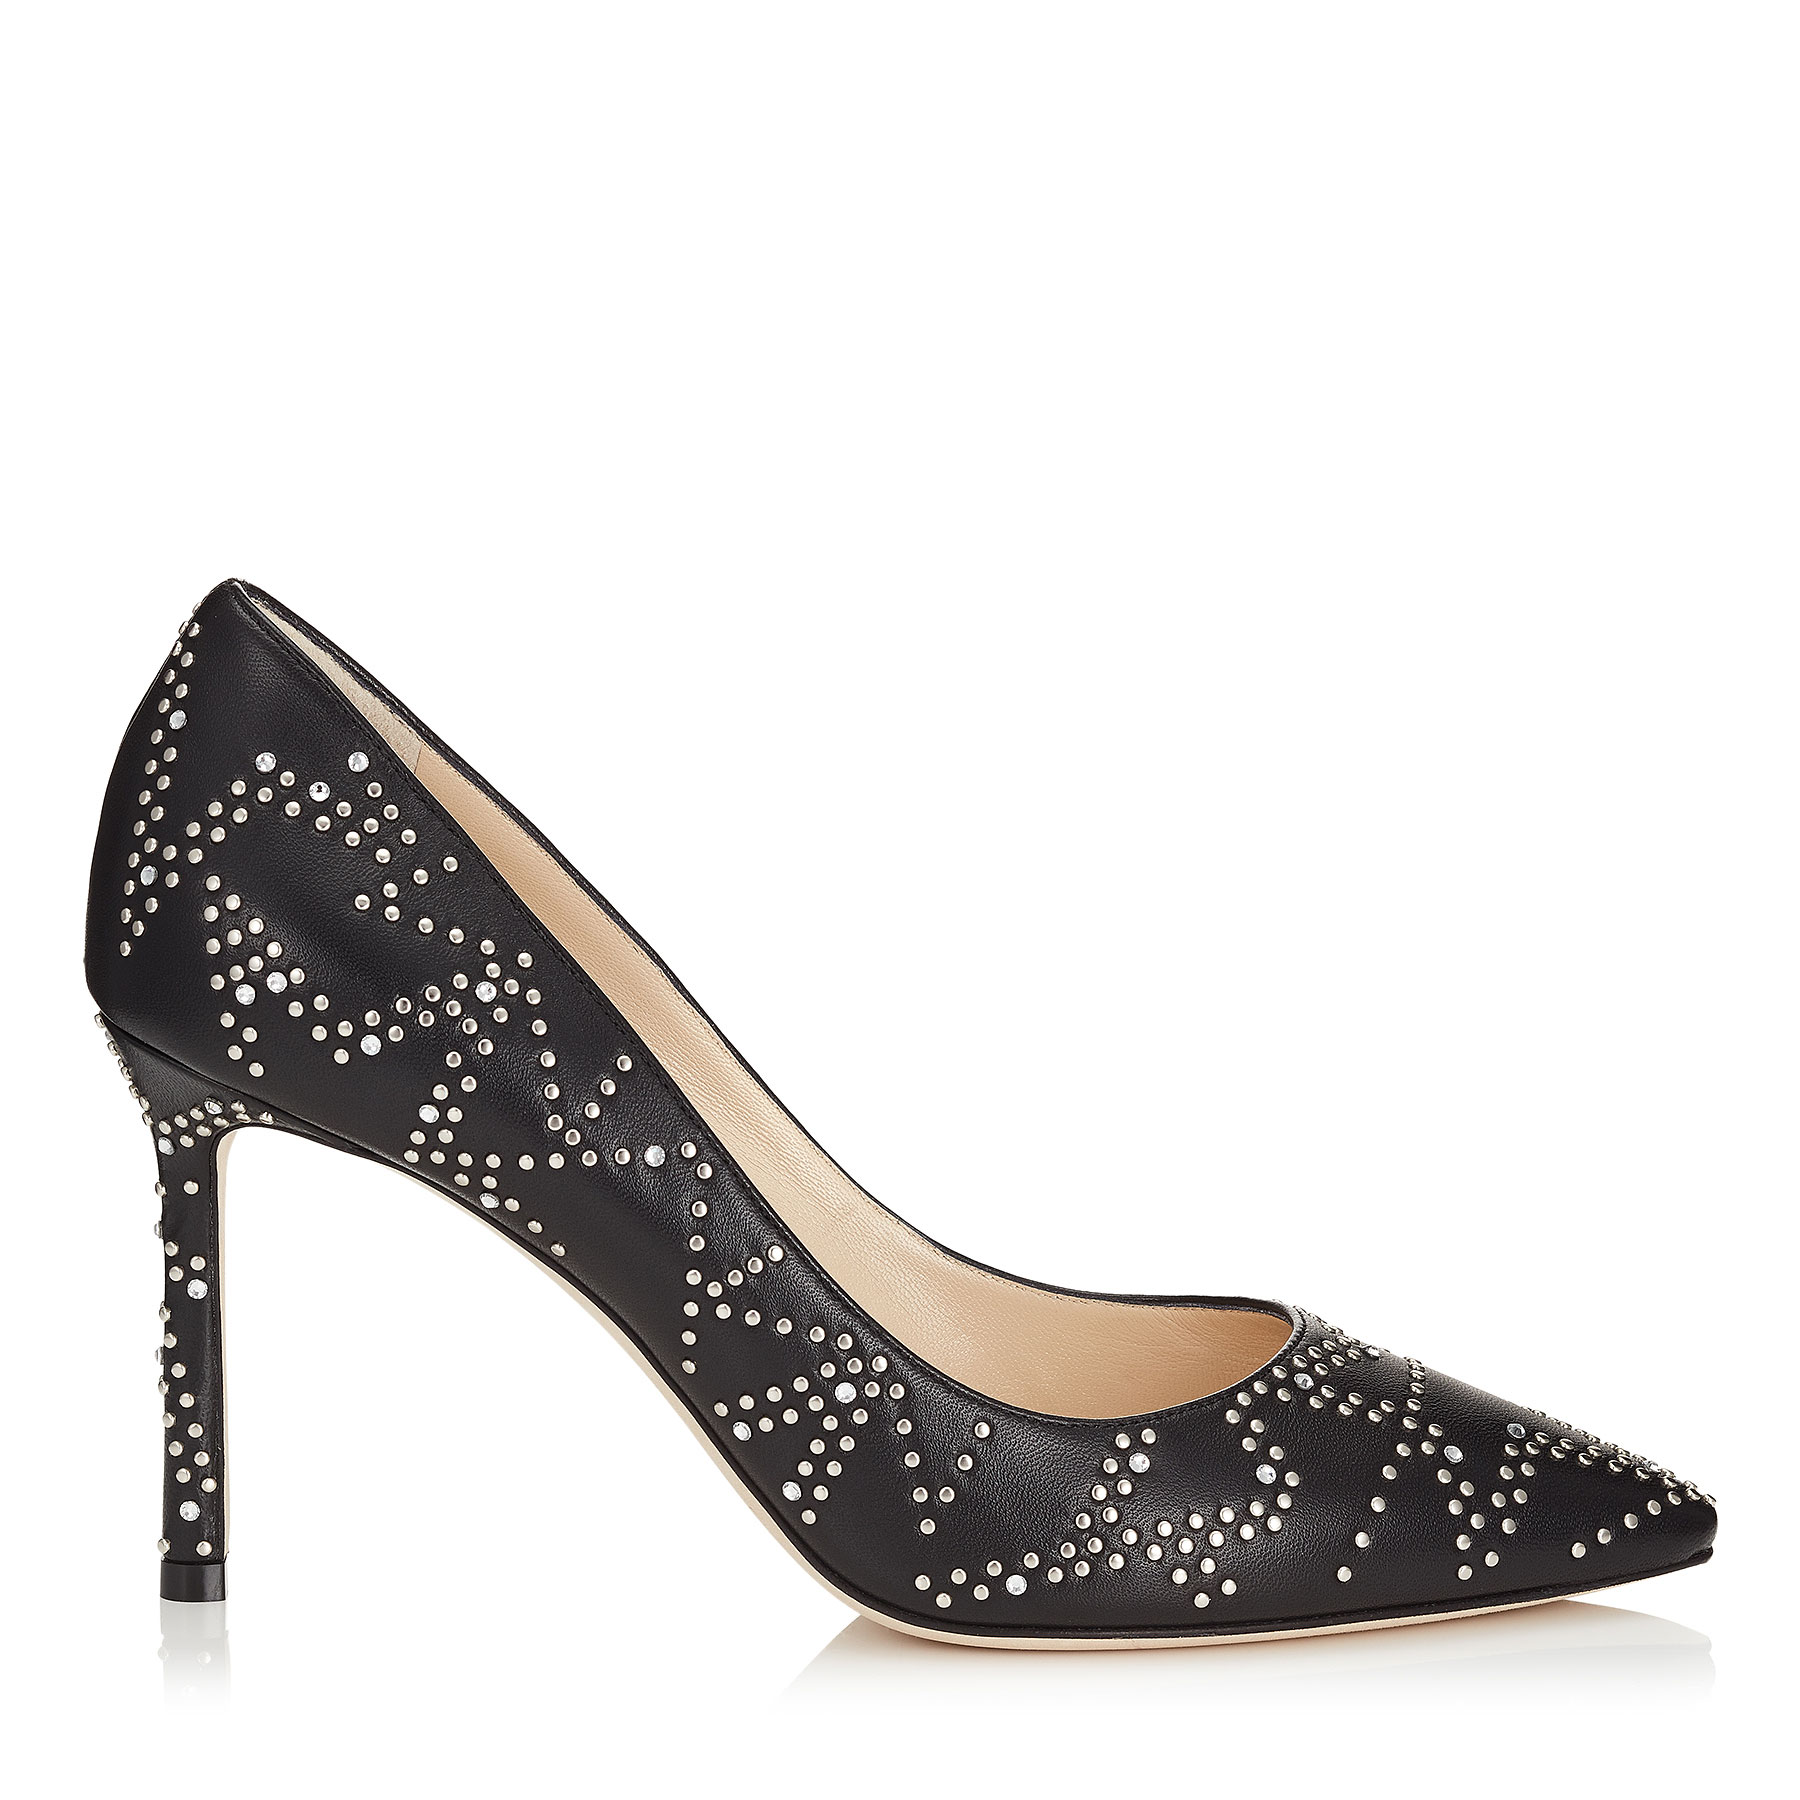 ROMY 85 Black Nappa Leather Pointy Toe Pumps with Anthracite Micro Star Studded Detail by Jimmy Choo